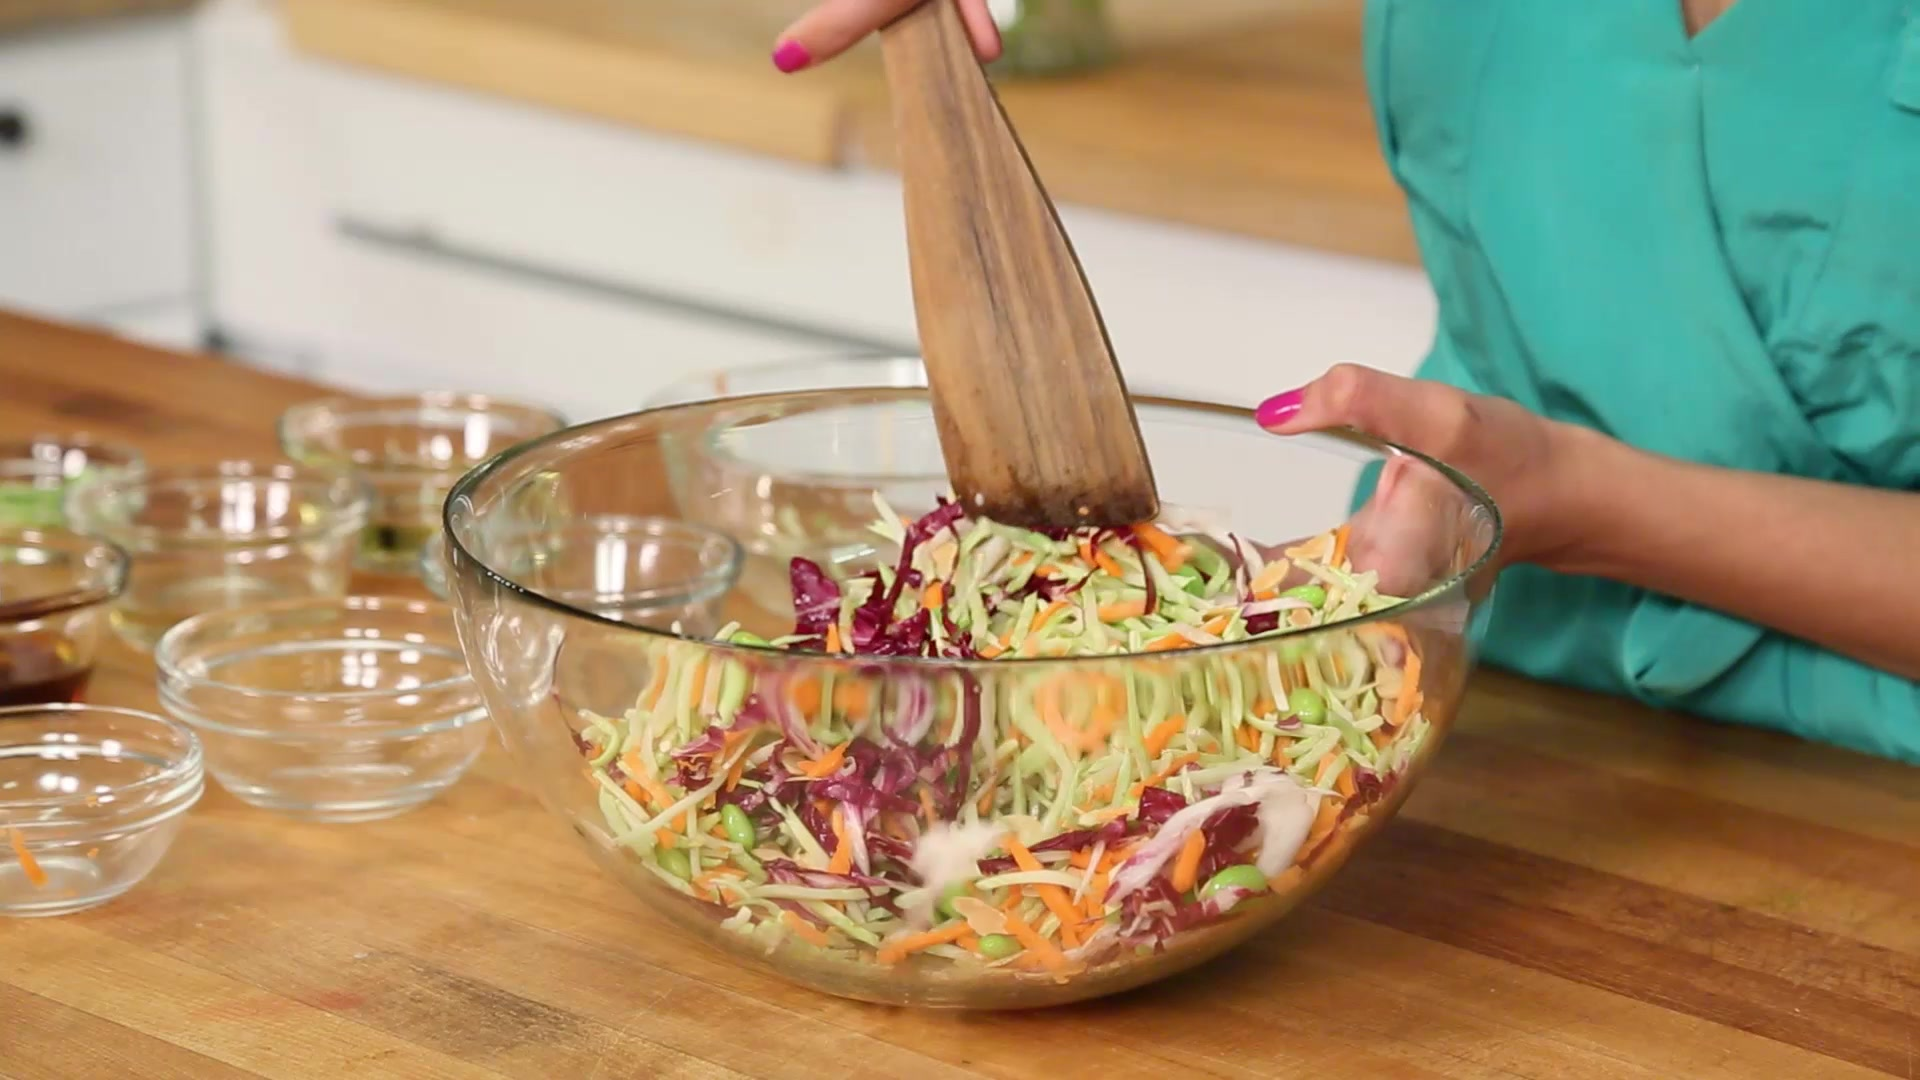 How to Make an Asian Broccoli Slaw with Quinoa